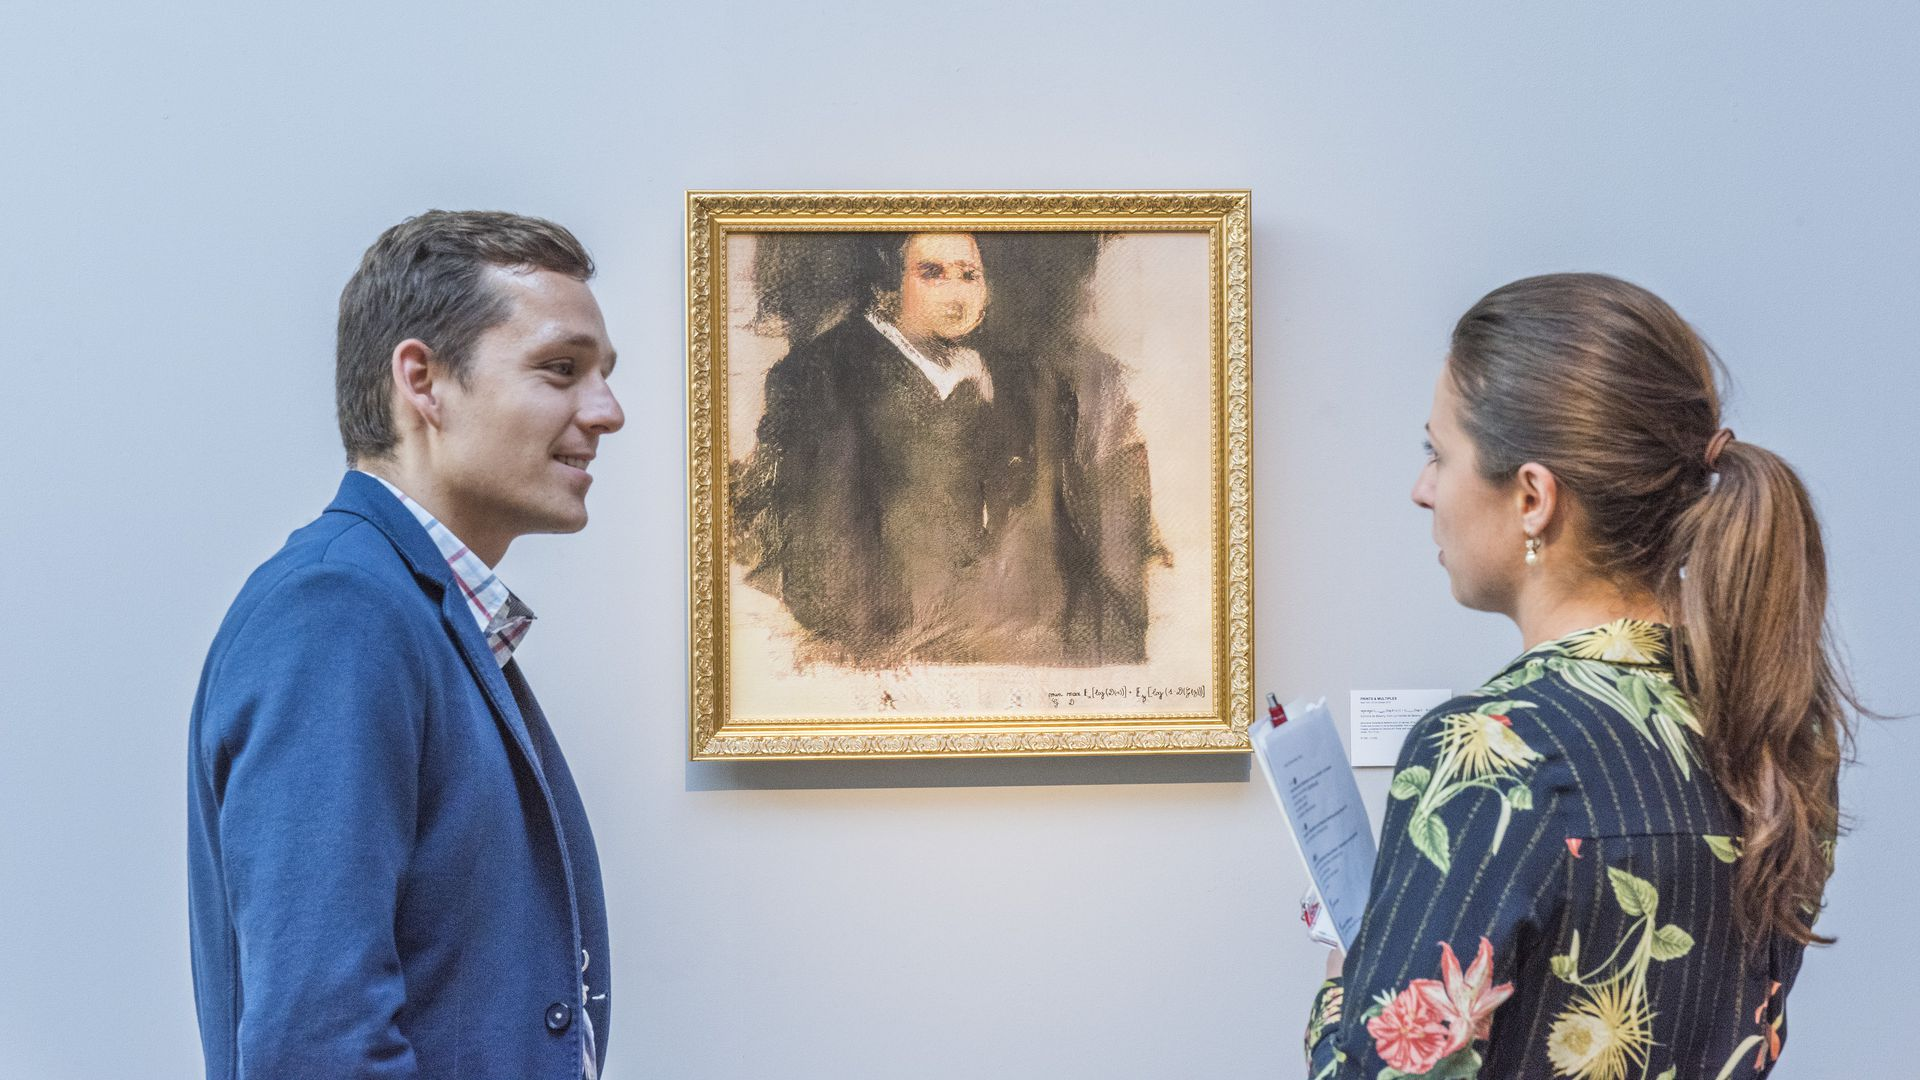 A man and a woman speak to one another in front of an AI-generated portrait in a gallery.